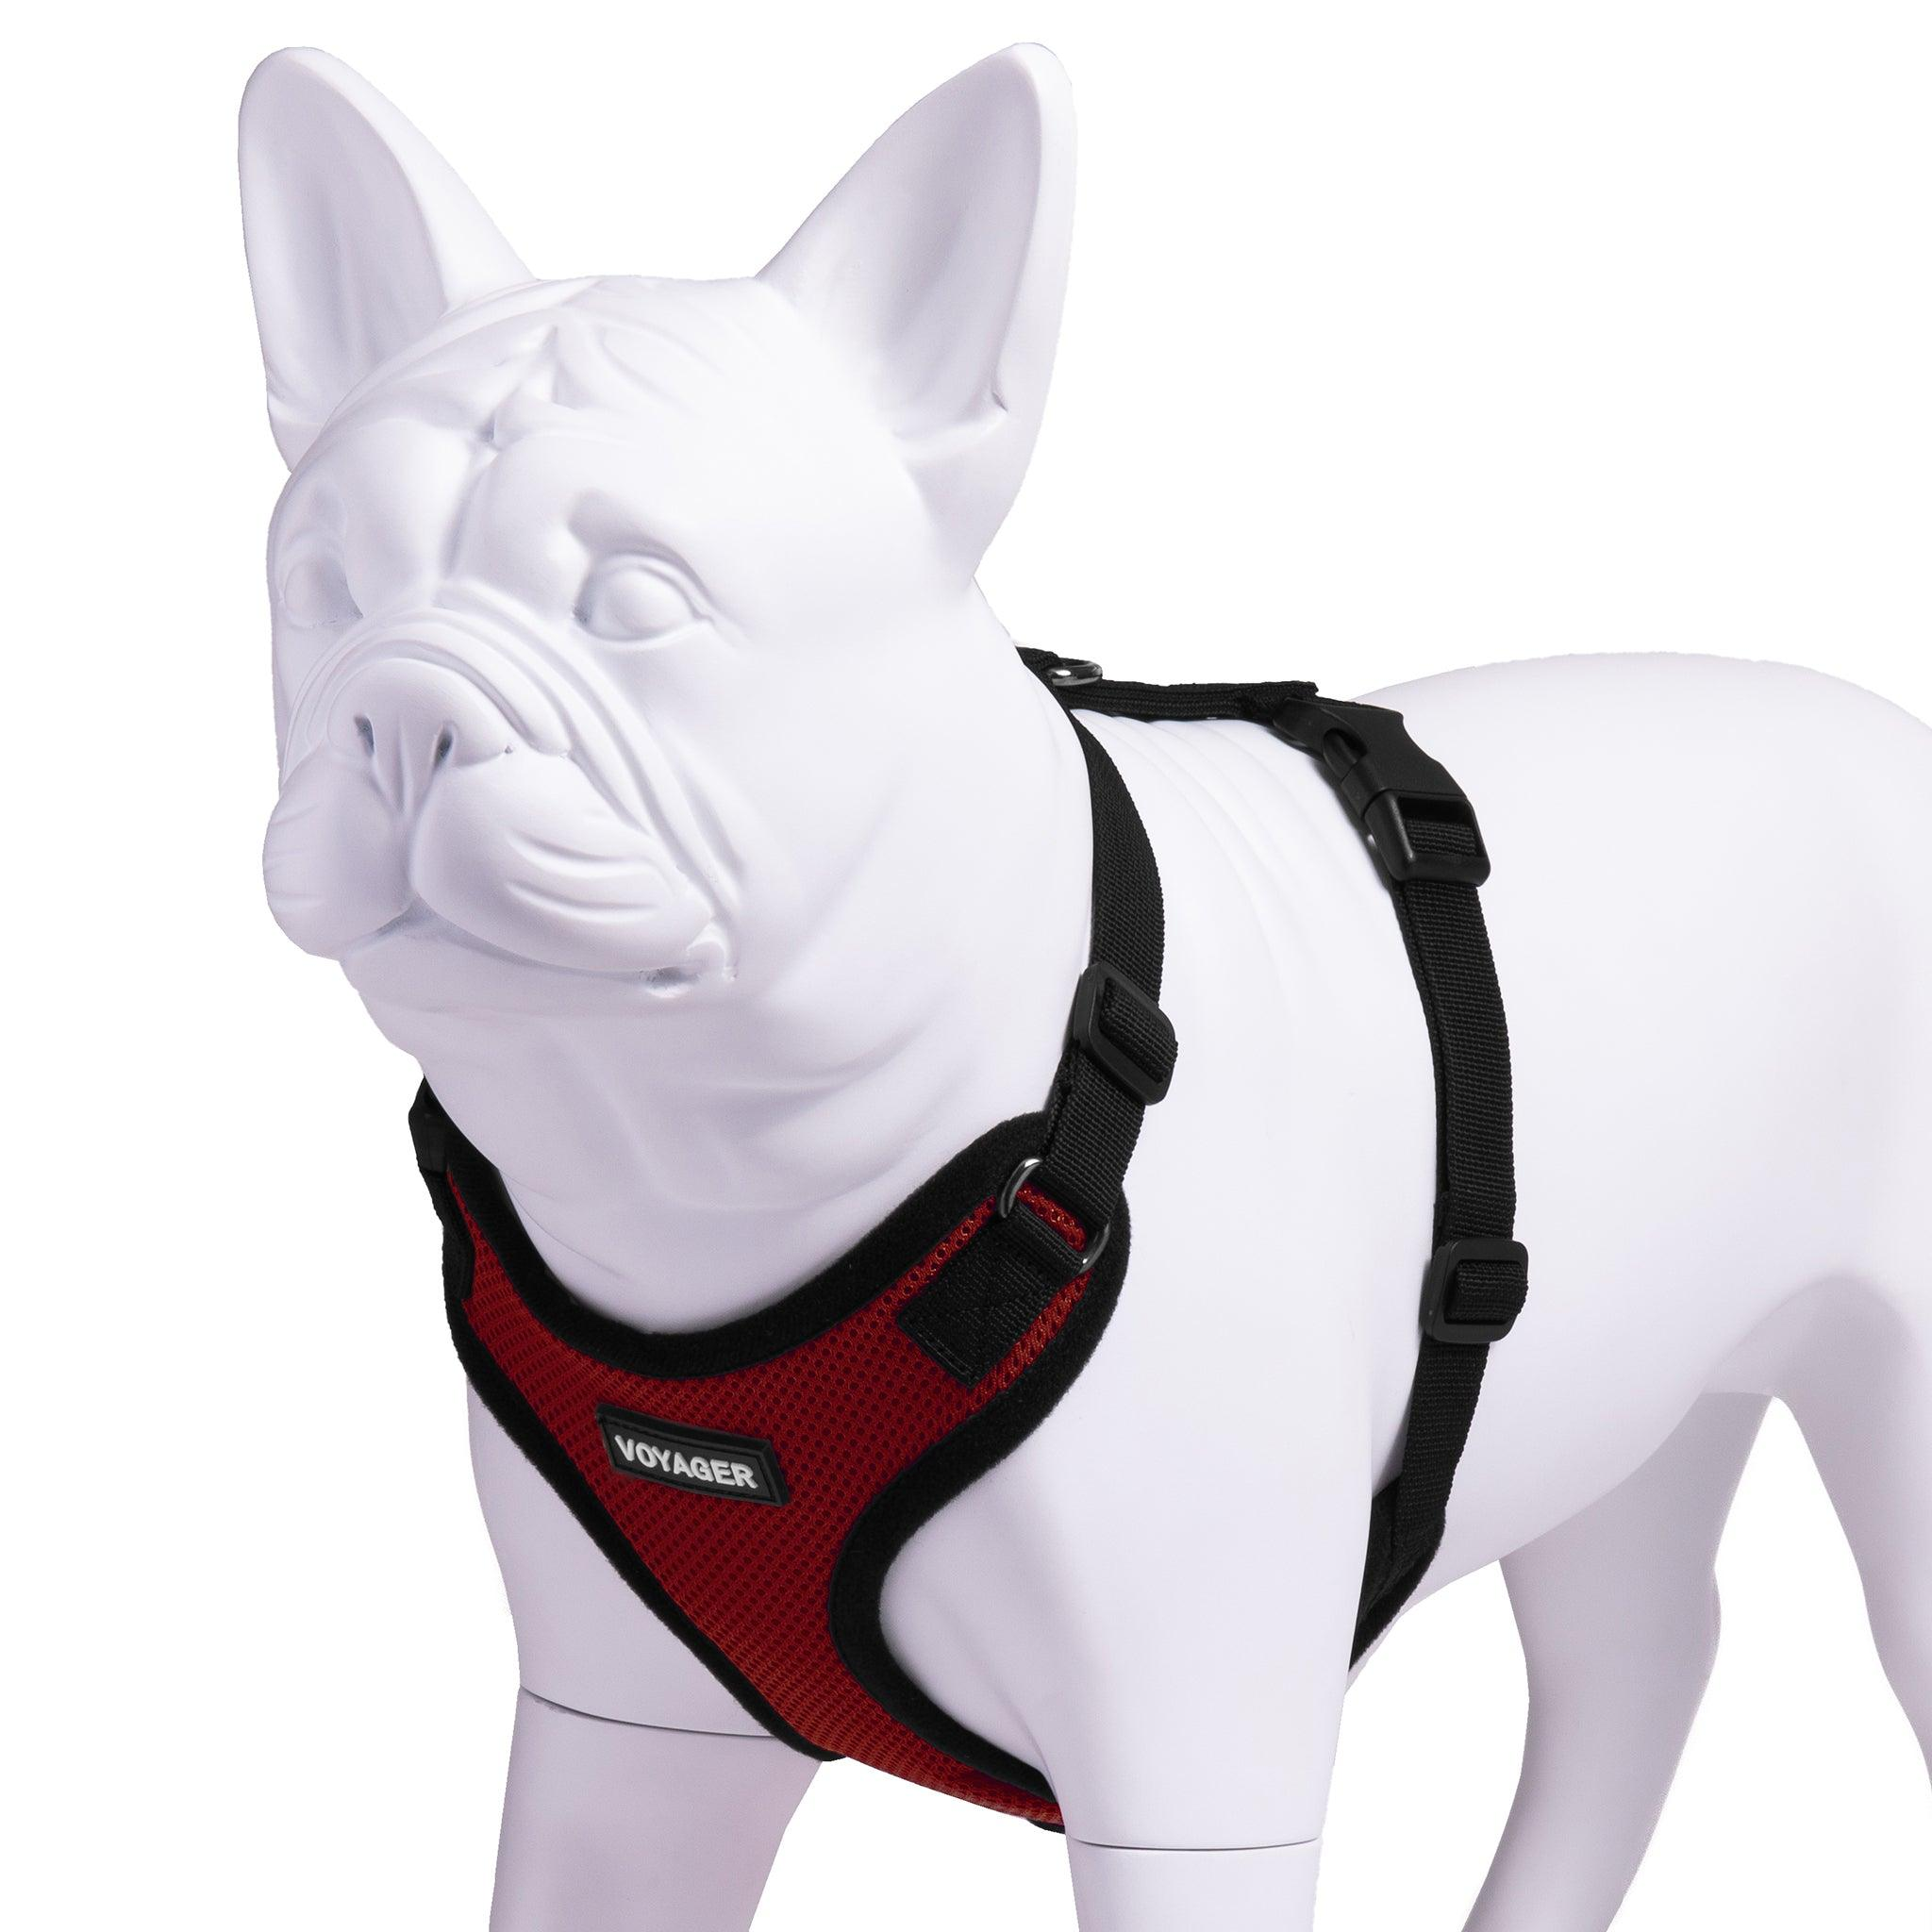 VOYAGER Step-In Lock Dog Harness in Red with Black Trim and Webbing - Expanded